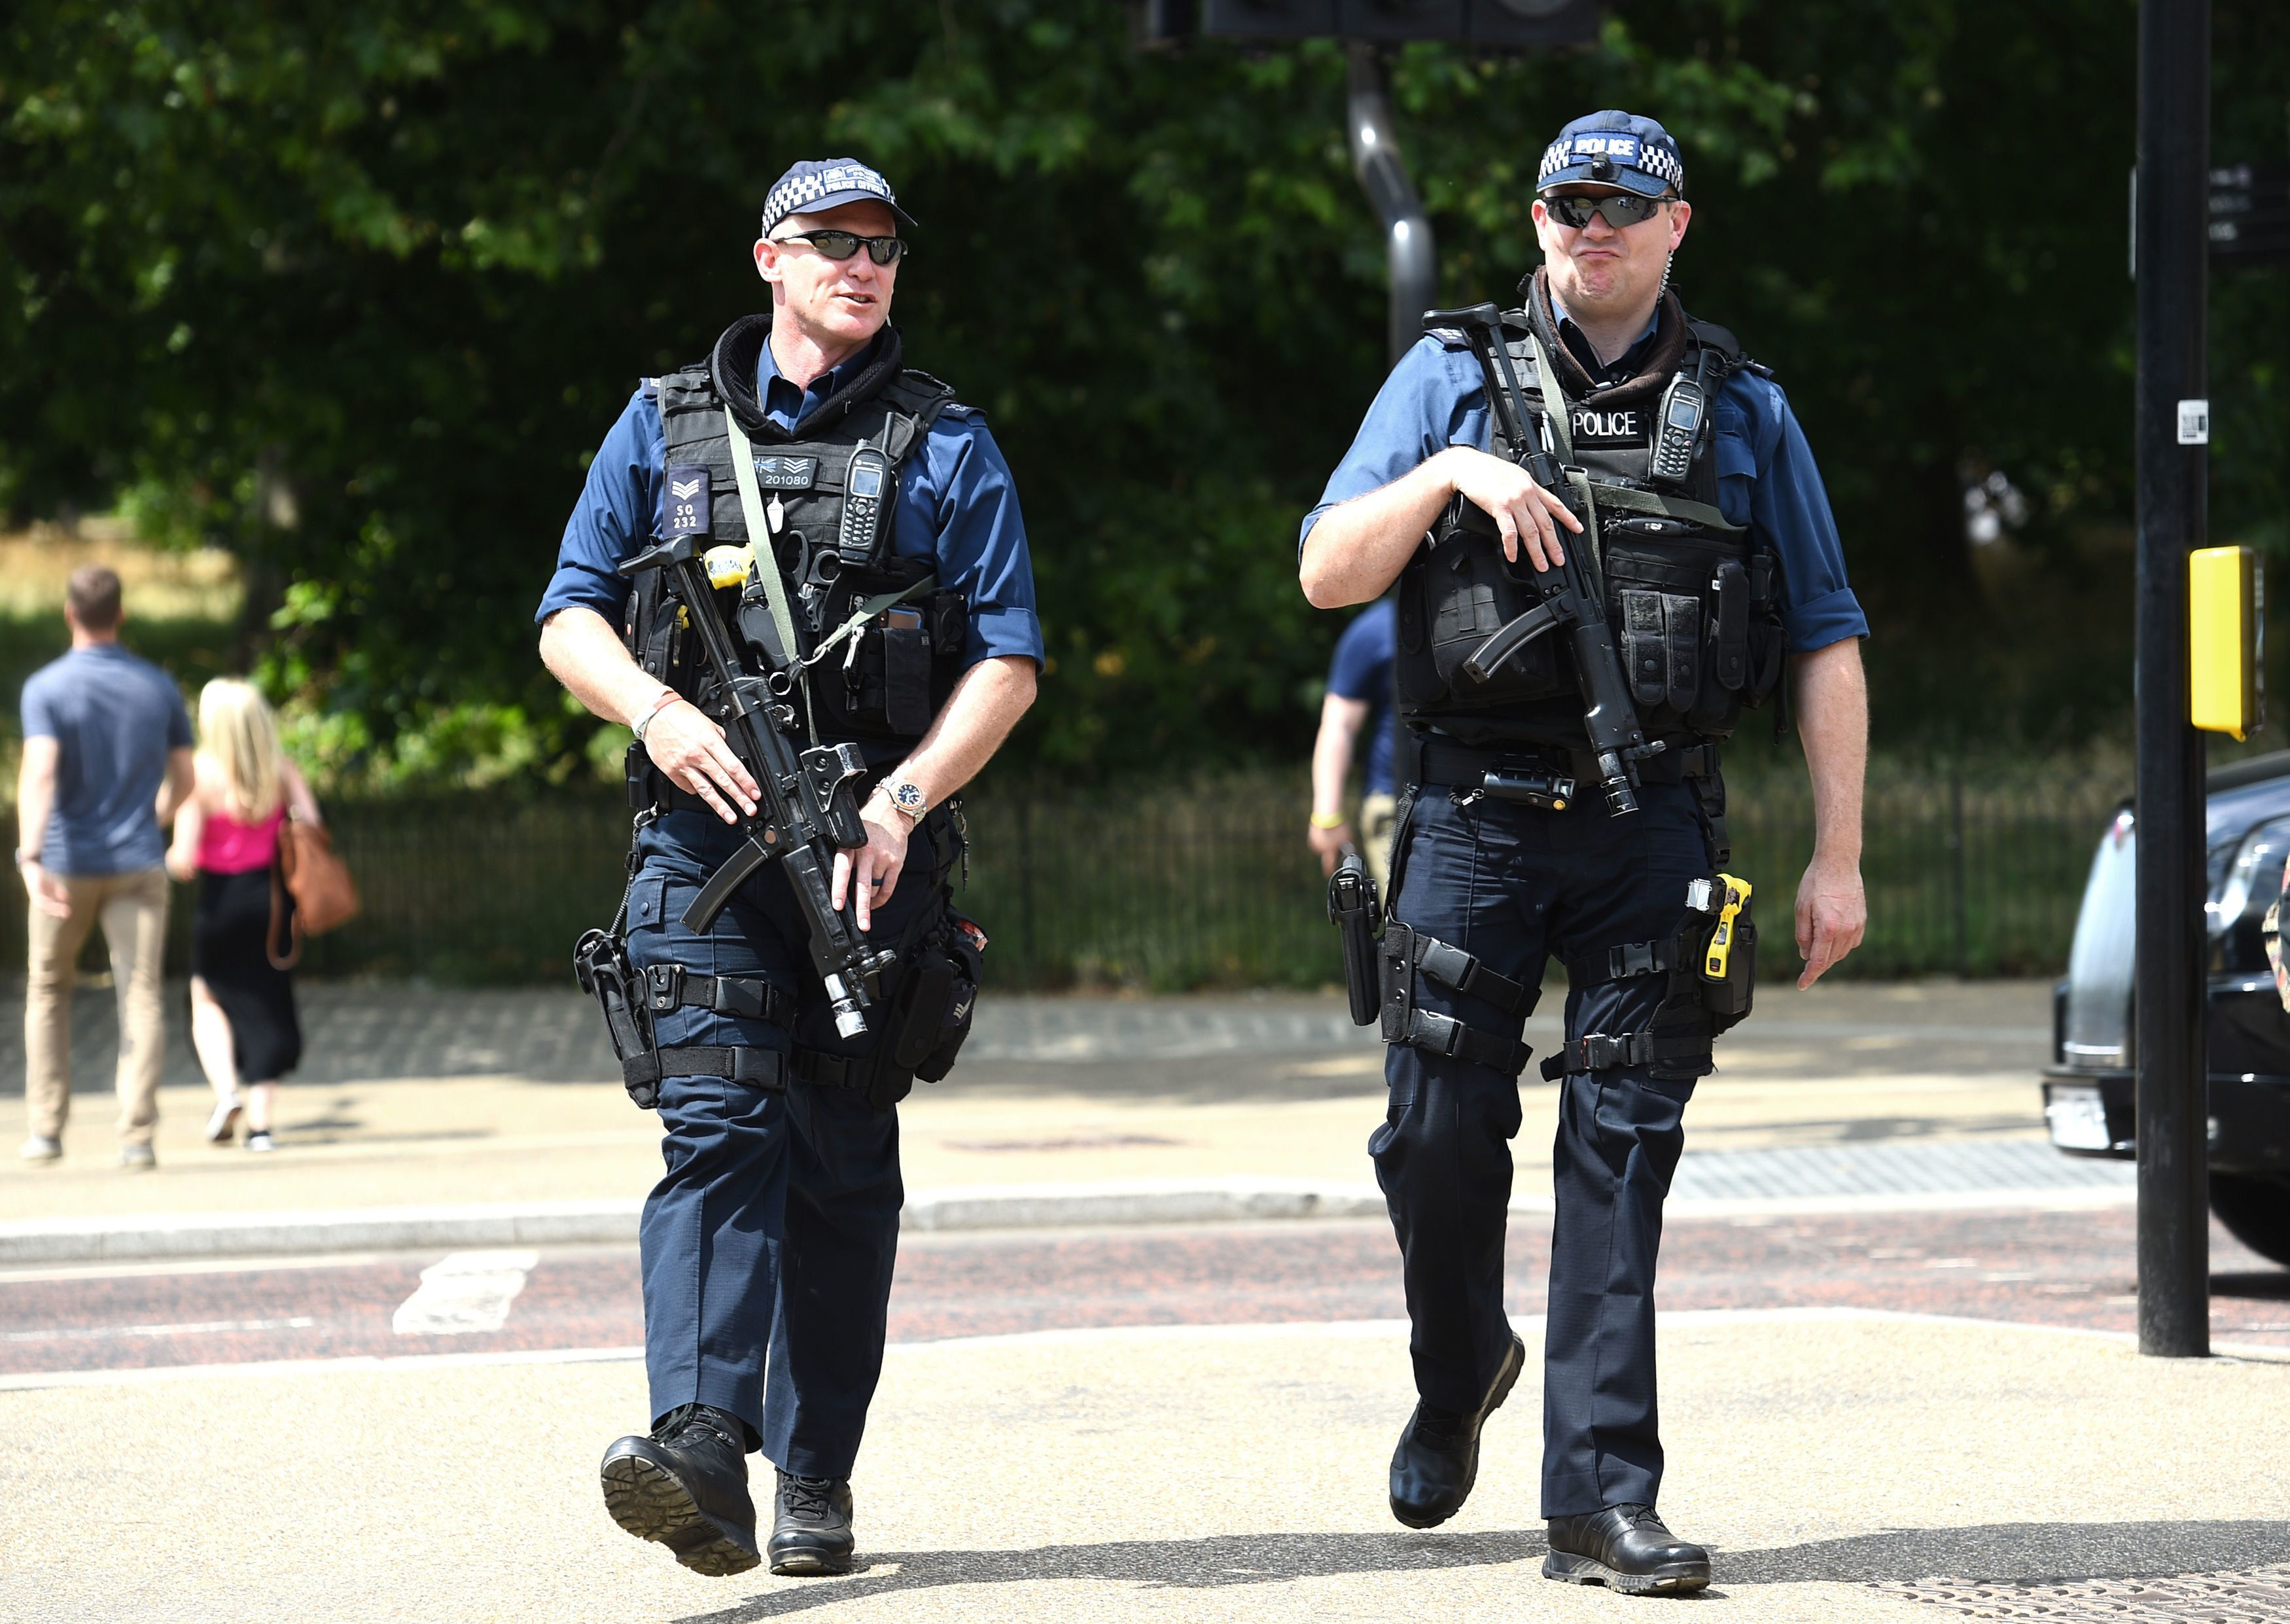 Is The Met Police Really Going To Introduce Armed